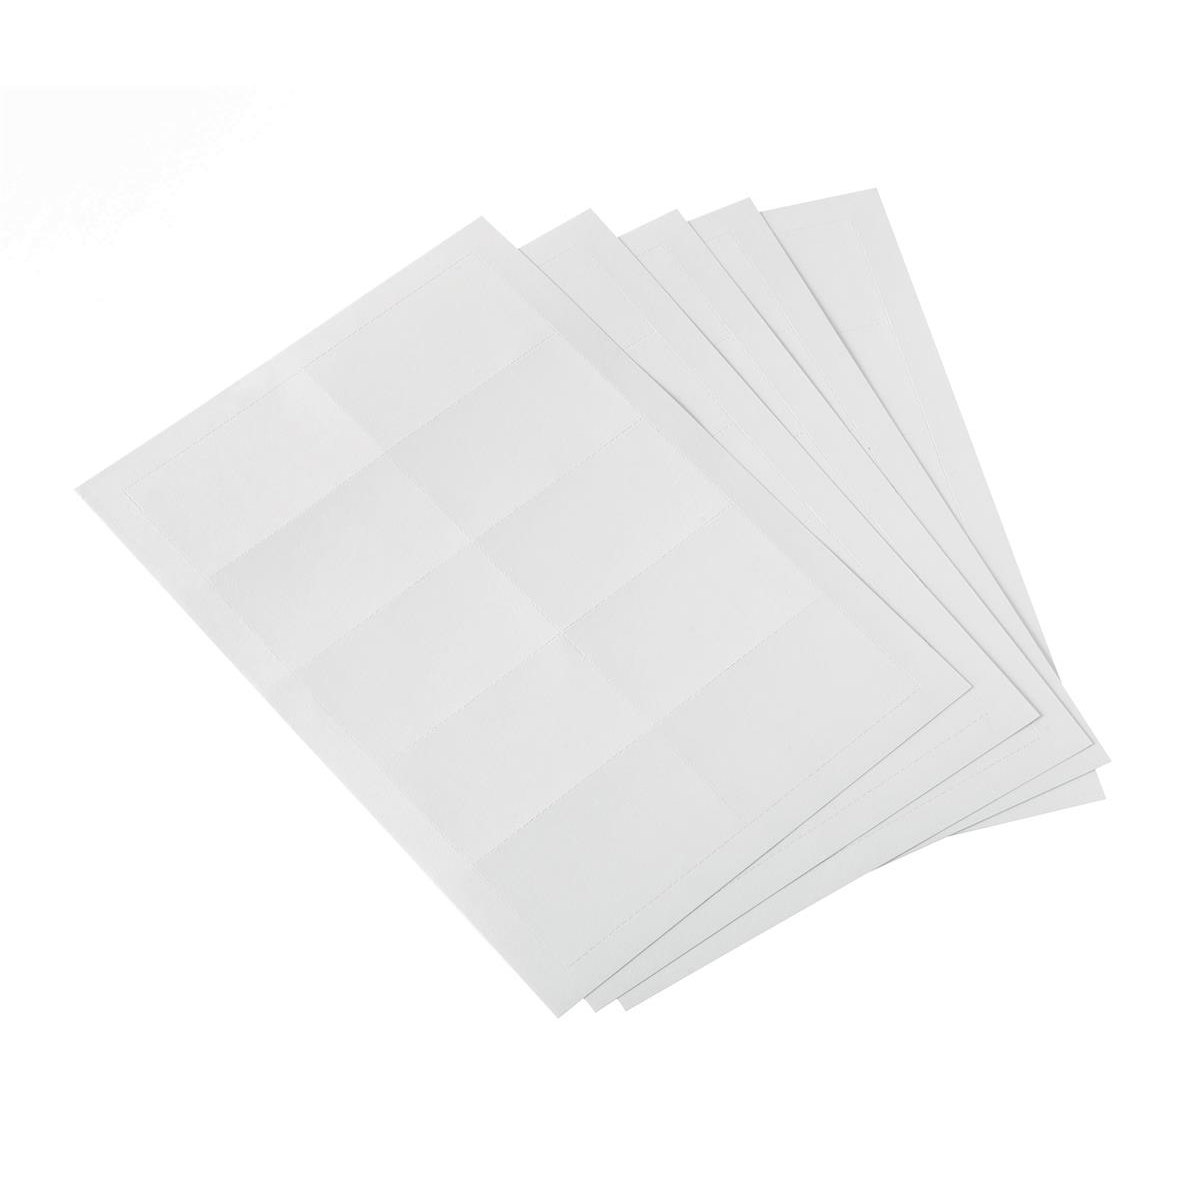 Inserts 5 Star Office Badge Inserts 54x90mm 20 Sheets of 10 200 Inserts